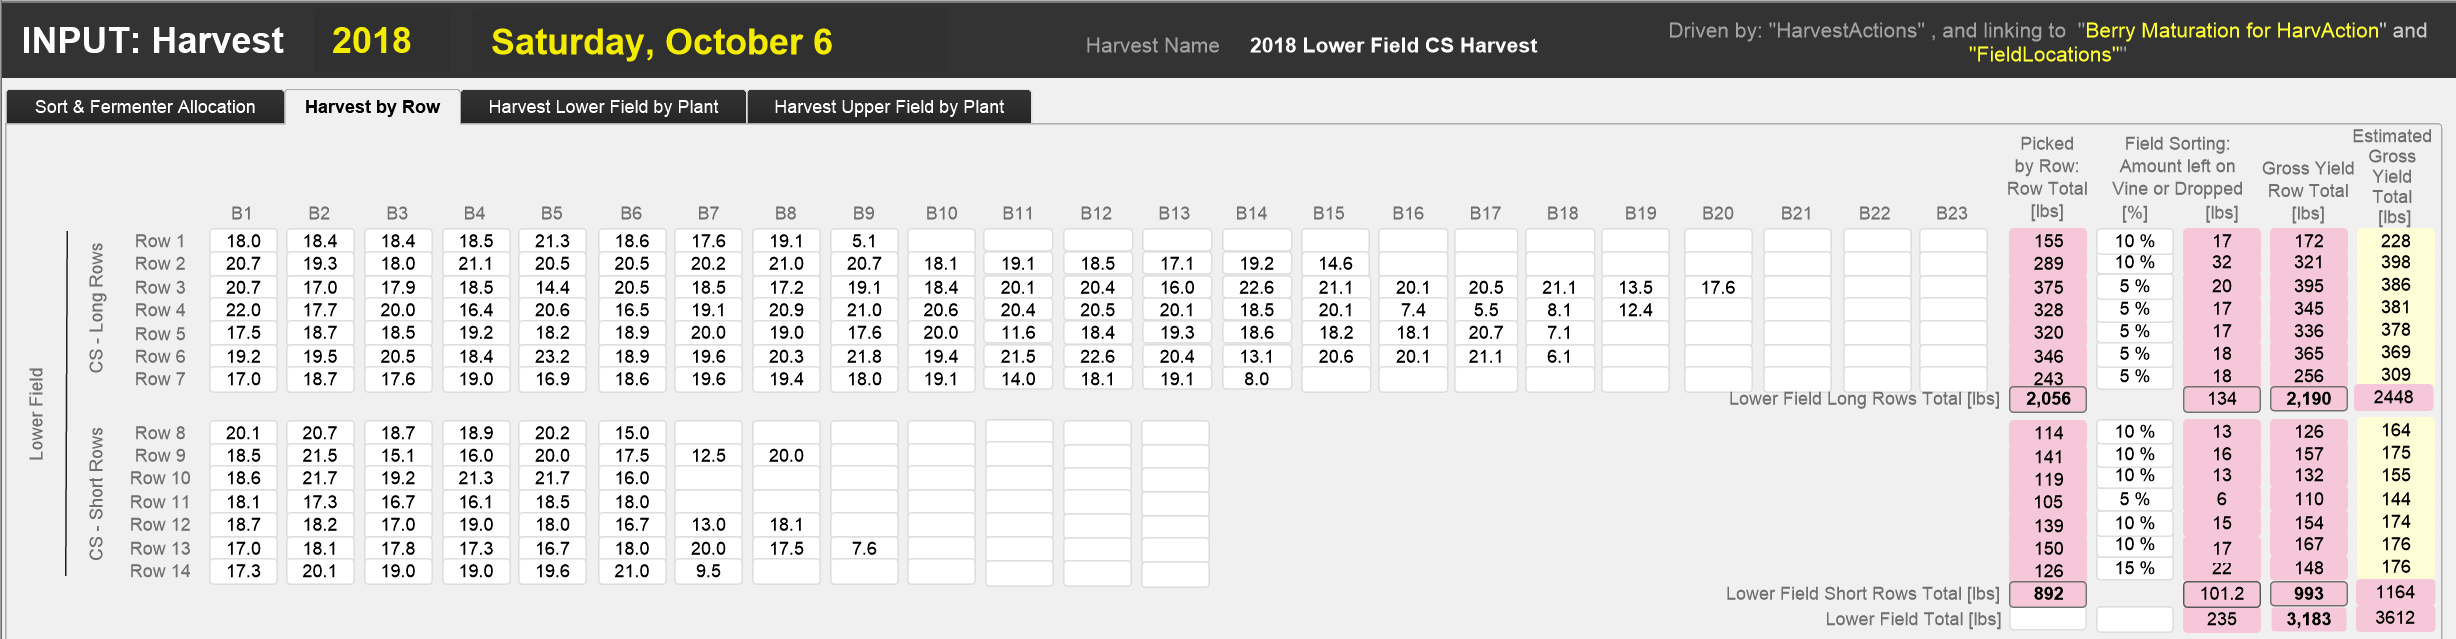 Input HarvestAction lower field example.png